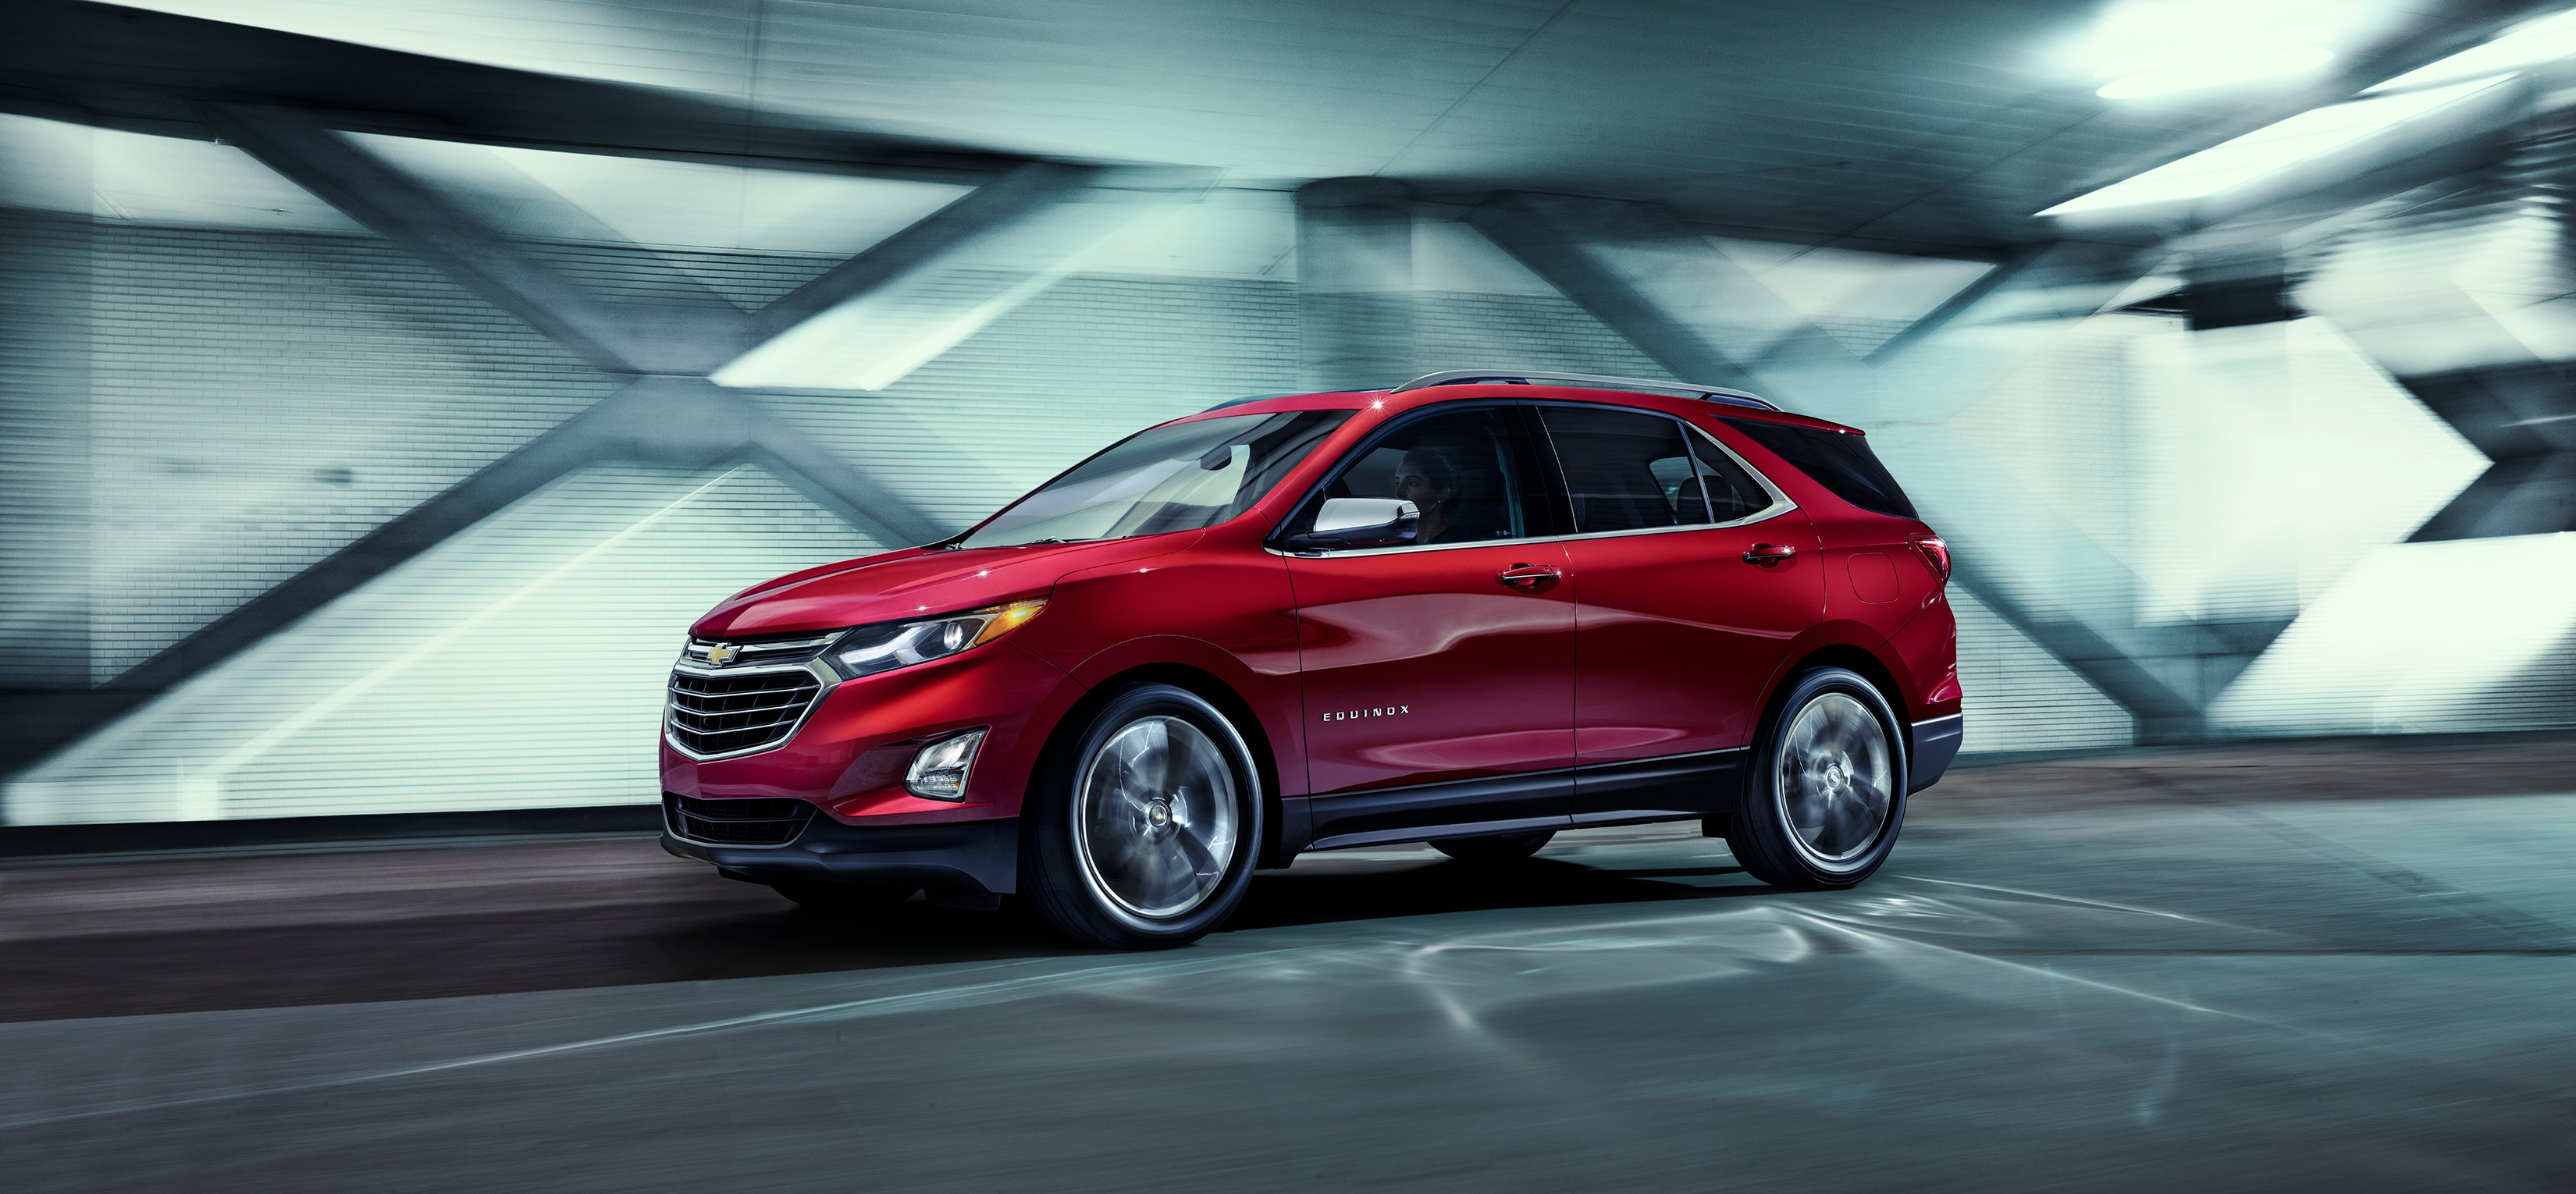 ALL NEW CHEVROLET EQUINOX TO MAKE MIDDLE EAST DEBUT THIS YEAR